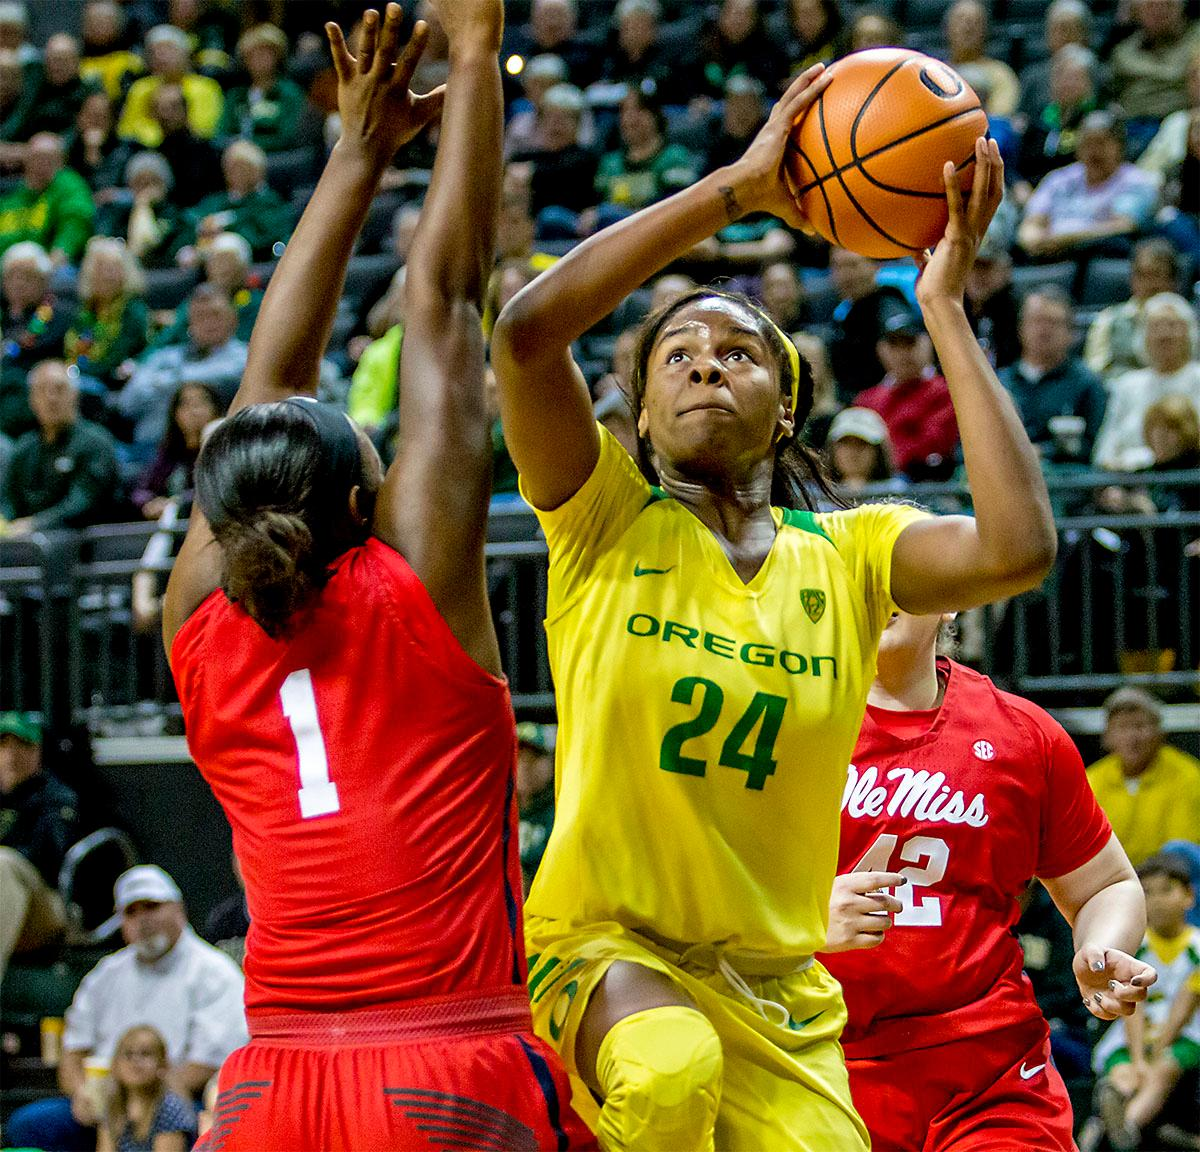 The Duck's Ruthy Hebard (#24) goes up for the shot. The Duck's Sabrina Ionescu (#20) is introduced at the start of the game against the Ole Miss Rebels. The Oregon Ducks womens basketball team defeated the Ole Miss Rebels 90-46 on Sunday at Matthew Knight Arena. Sabrina Ionescu tied the NCAA record for triple-doubles, finishing the game with 21 points, 14 assists, and 11 rebounds. Ruthy Hebard added 16 points, Satou Sabally added 12, and both Lexi Bando and Maite Cazorla scored 10 each. The Ducks will next face off against Texas A&M on Thursday Dec. 21 and Hawaii on Friday Dec. 22 in Las Vegas for Duel in the Desert before the start of Pac-12 games. Photo by August Frank, Oregon News Lab